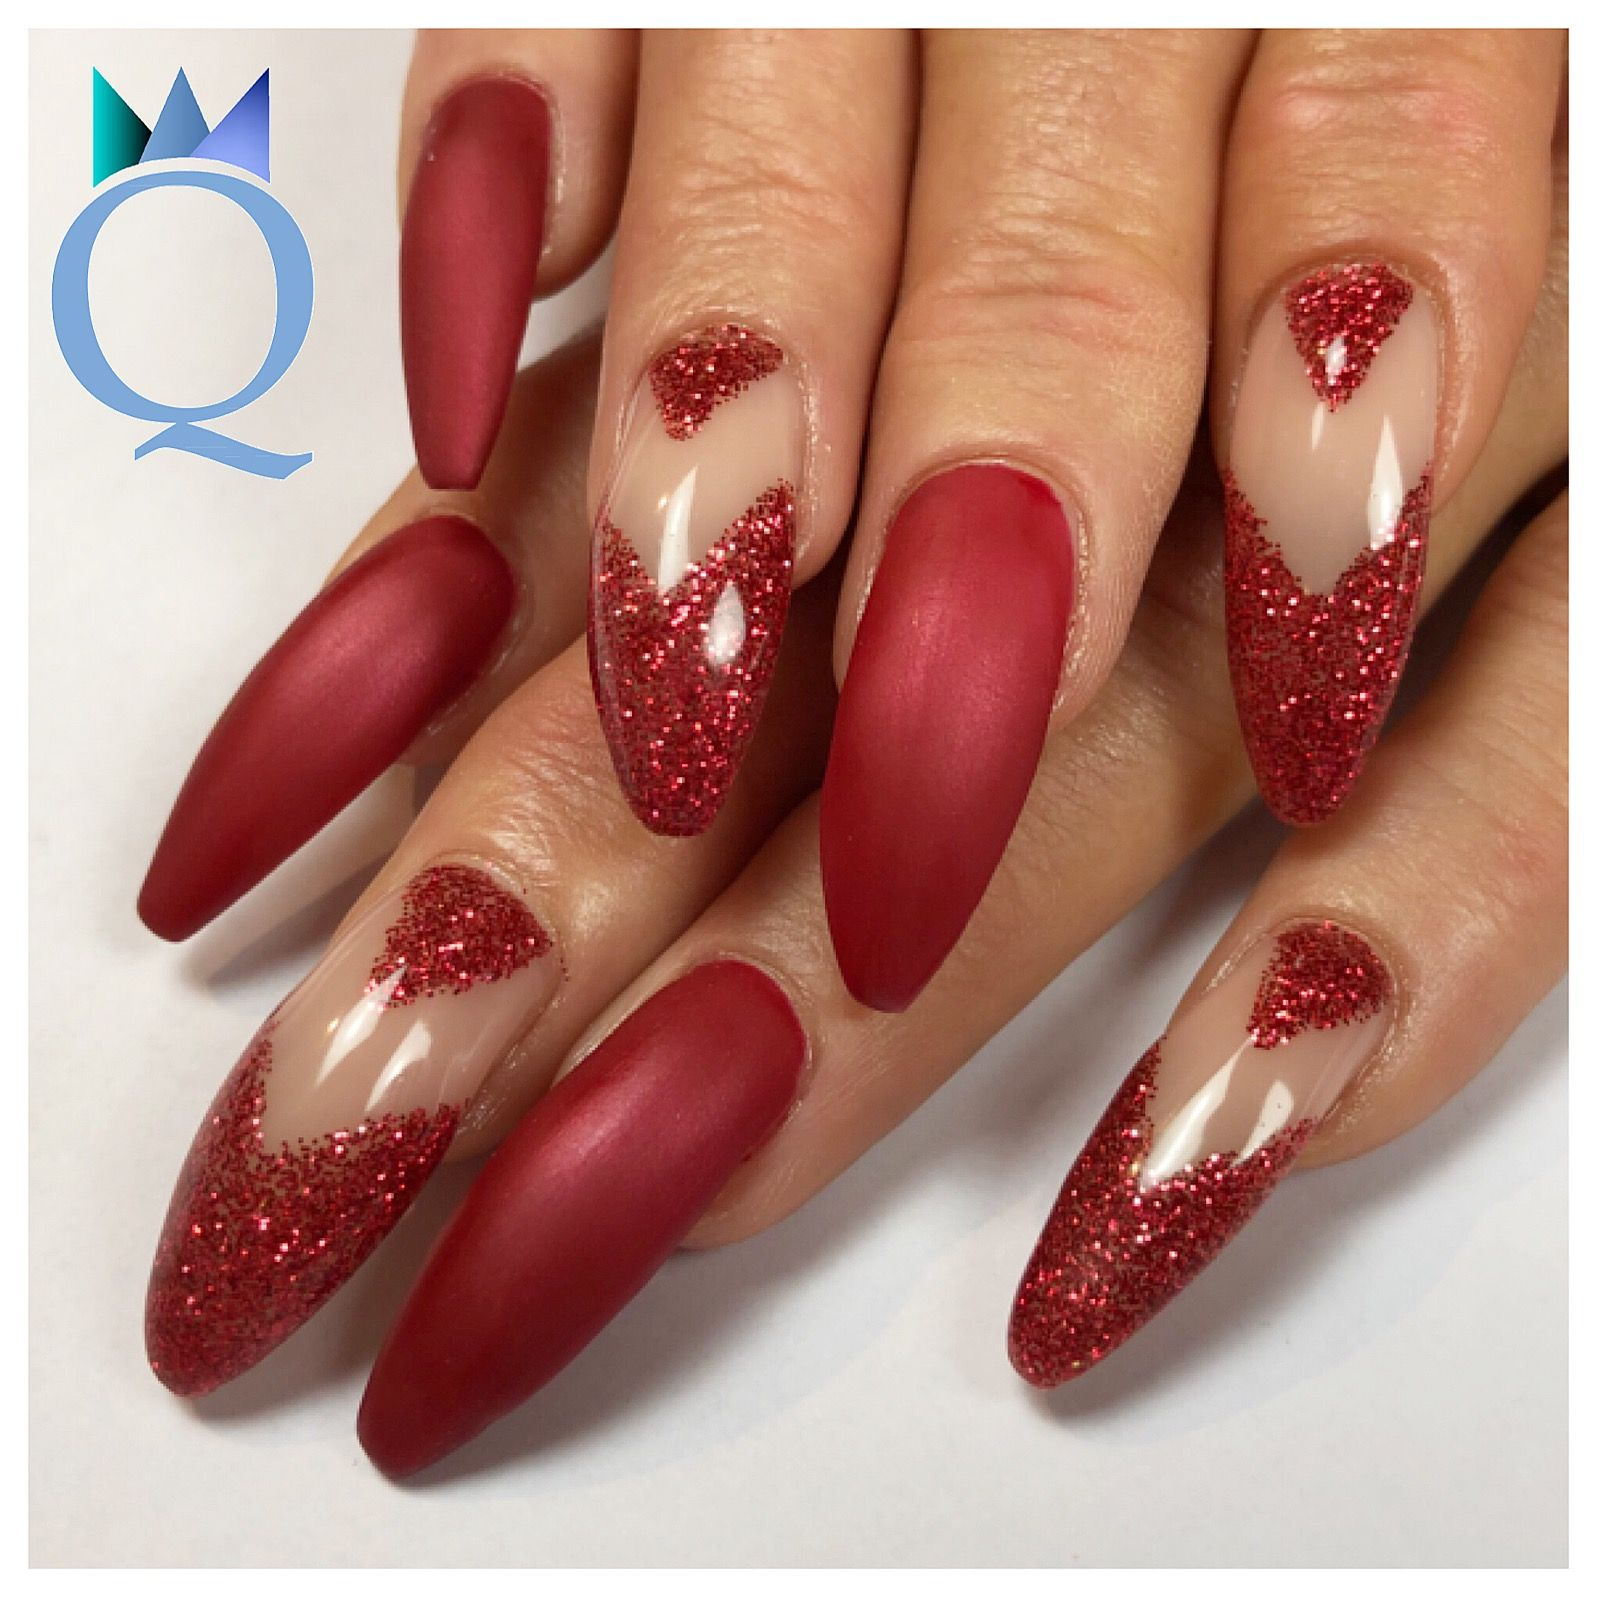 Bezaubernd Nageldesign Rot Galerie Von #longnails #gelnails #nails #coffinnails #red #glitter #langenägel